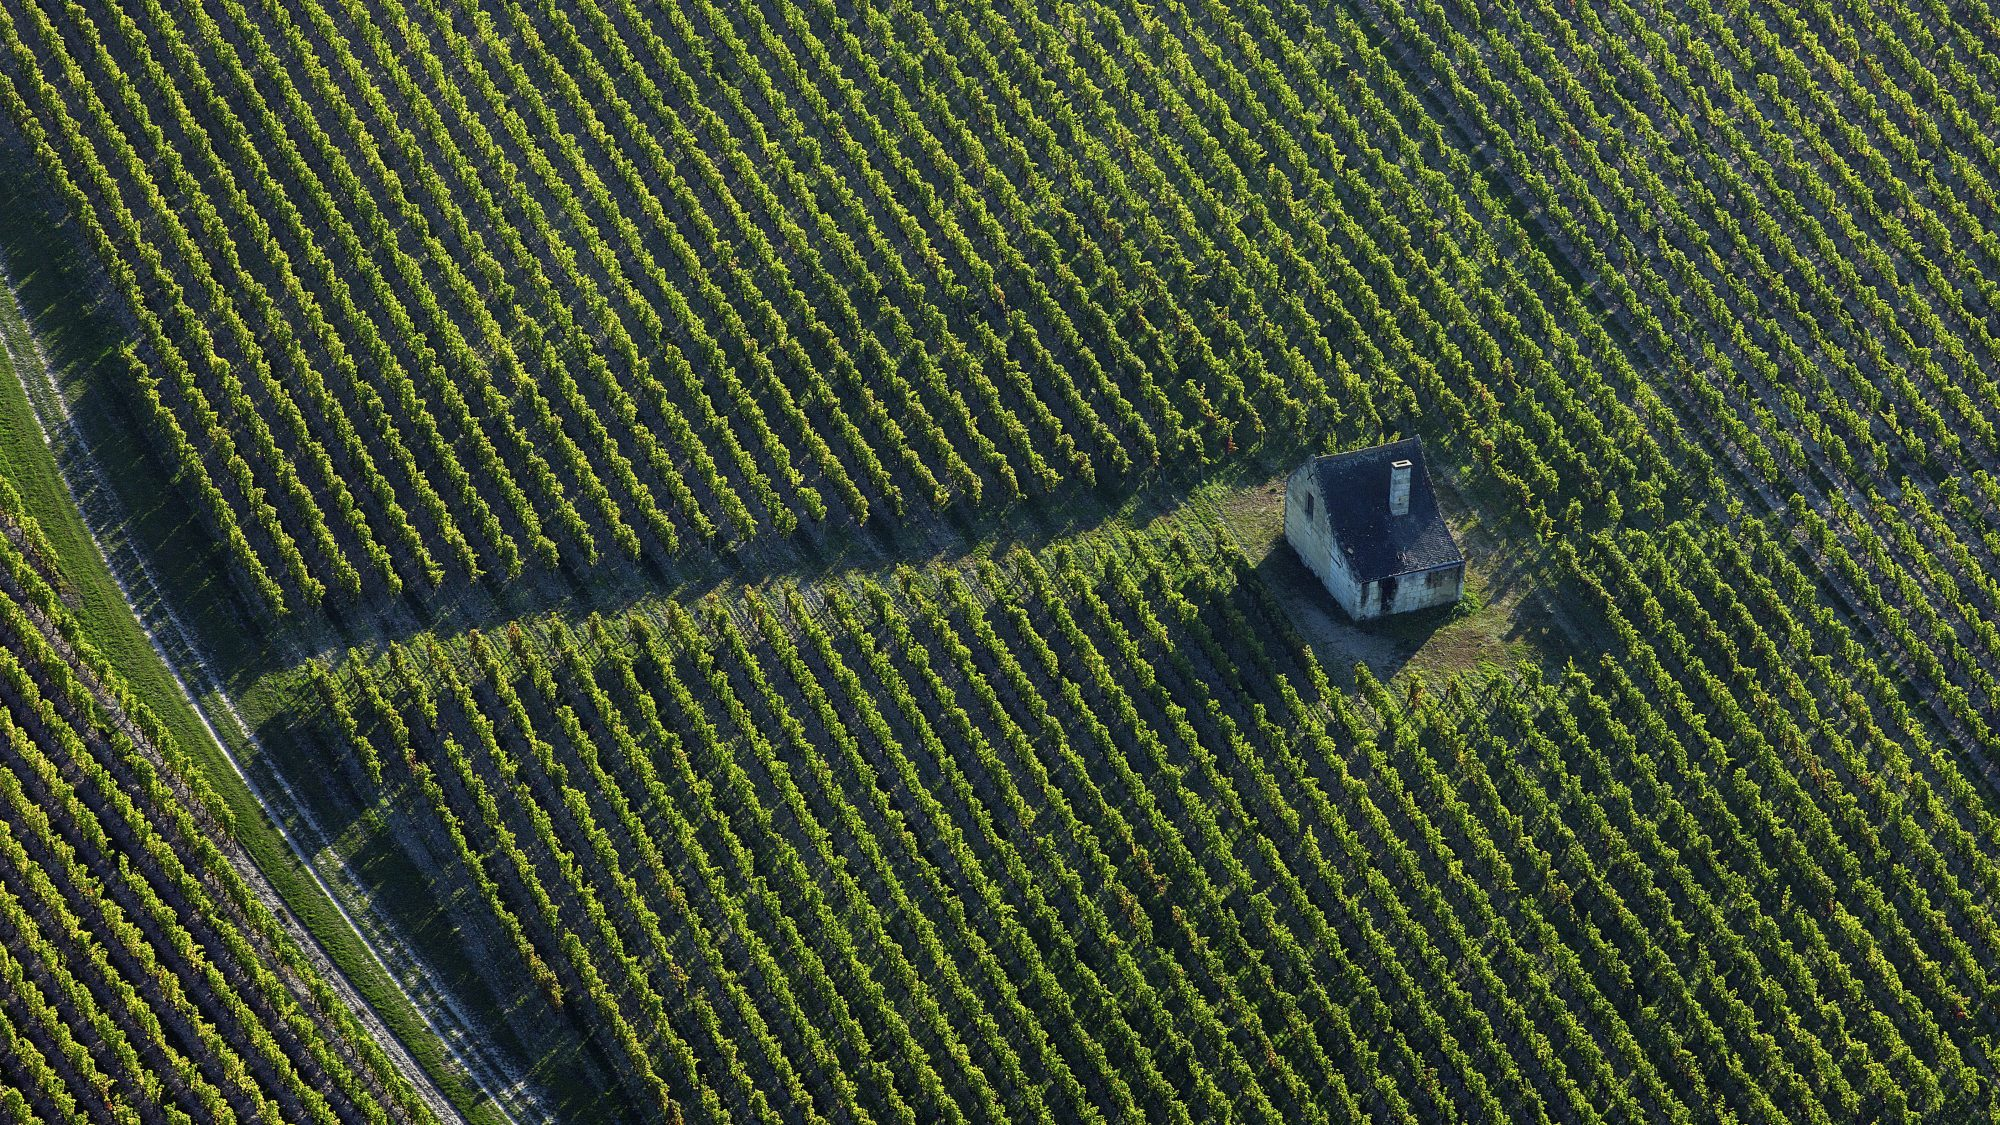 landscape of the vineyards of the Loire Valley